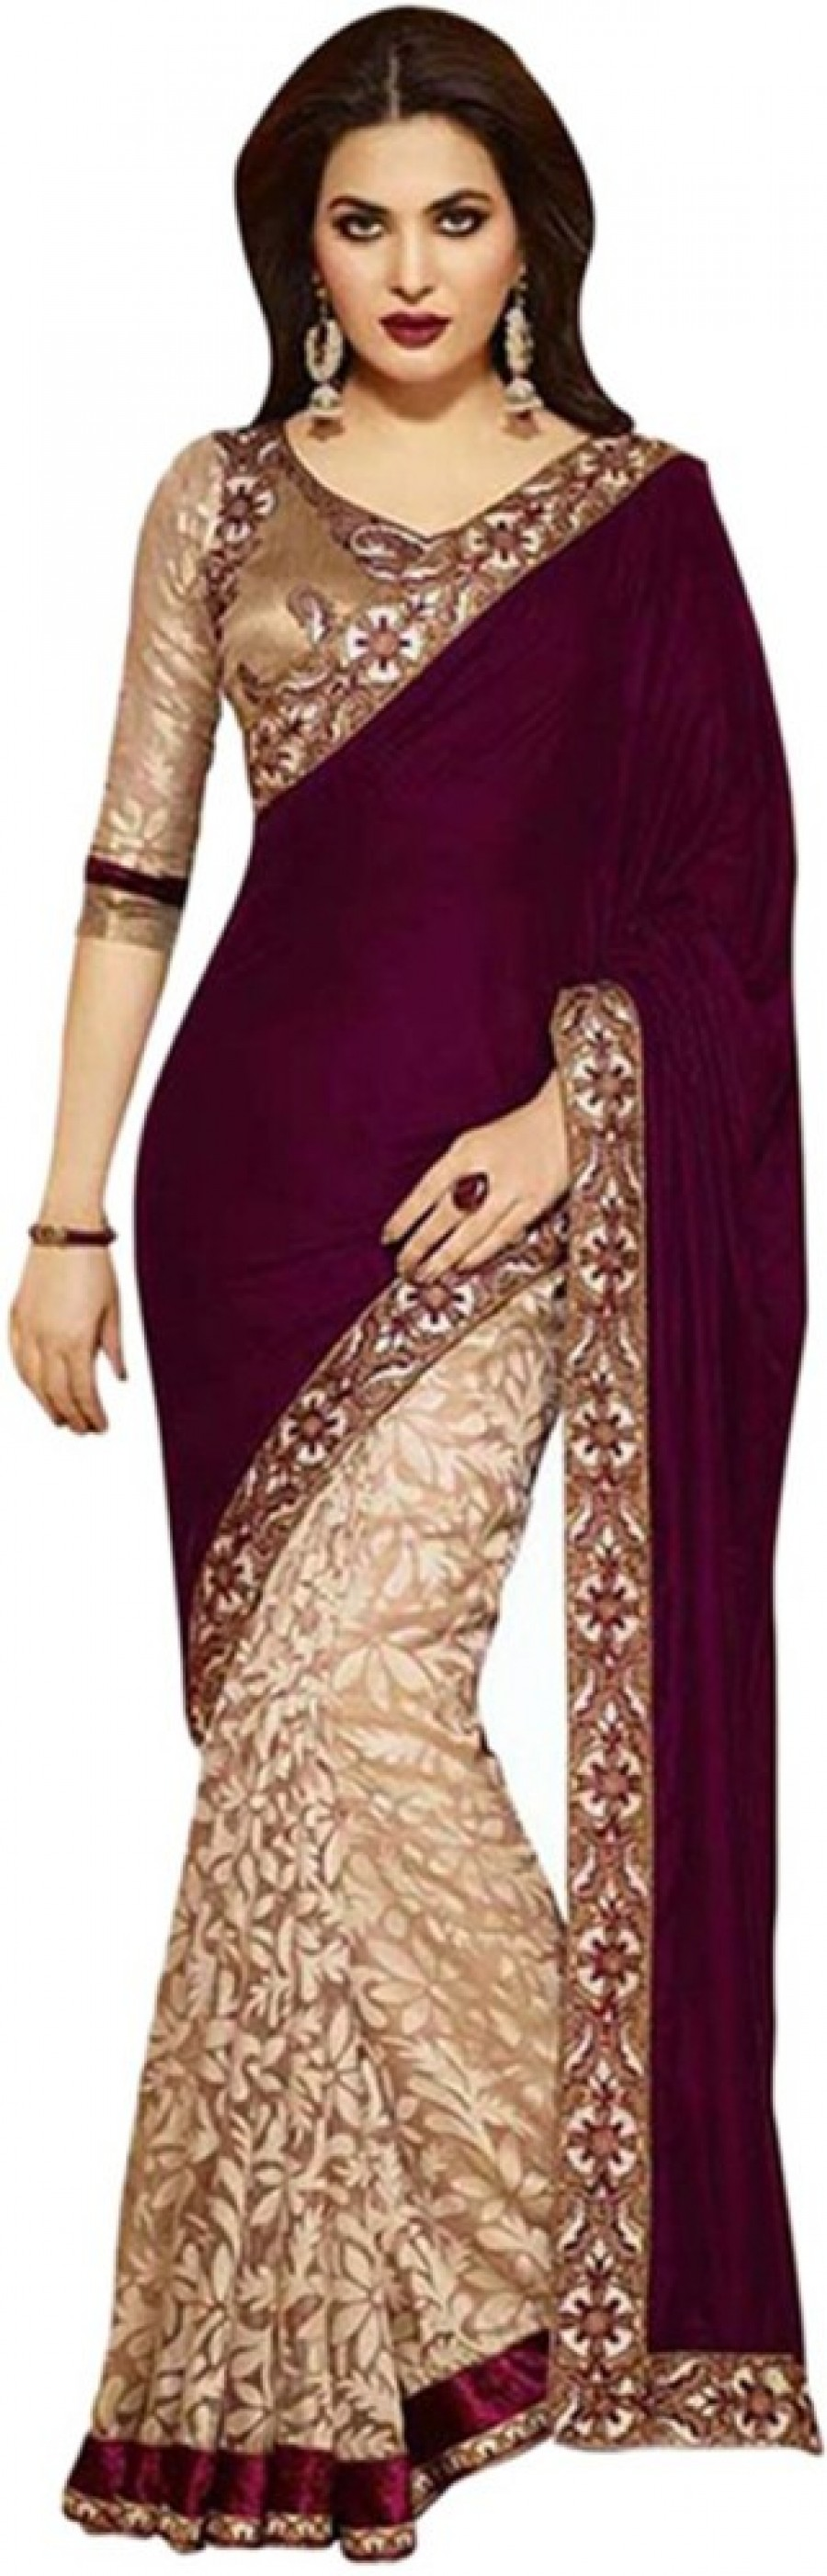 Buy Ramadev Fashion Embriodered Bollywood Velvet Sari Online